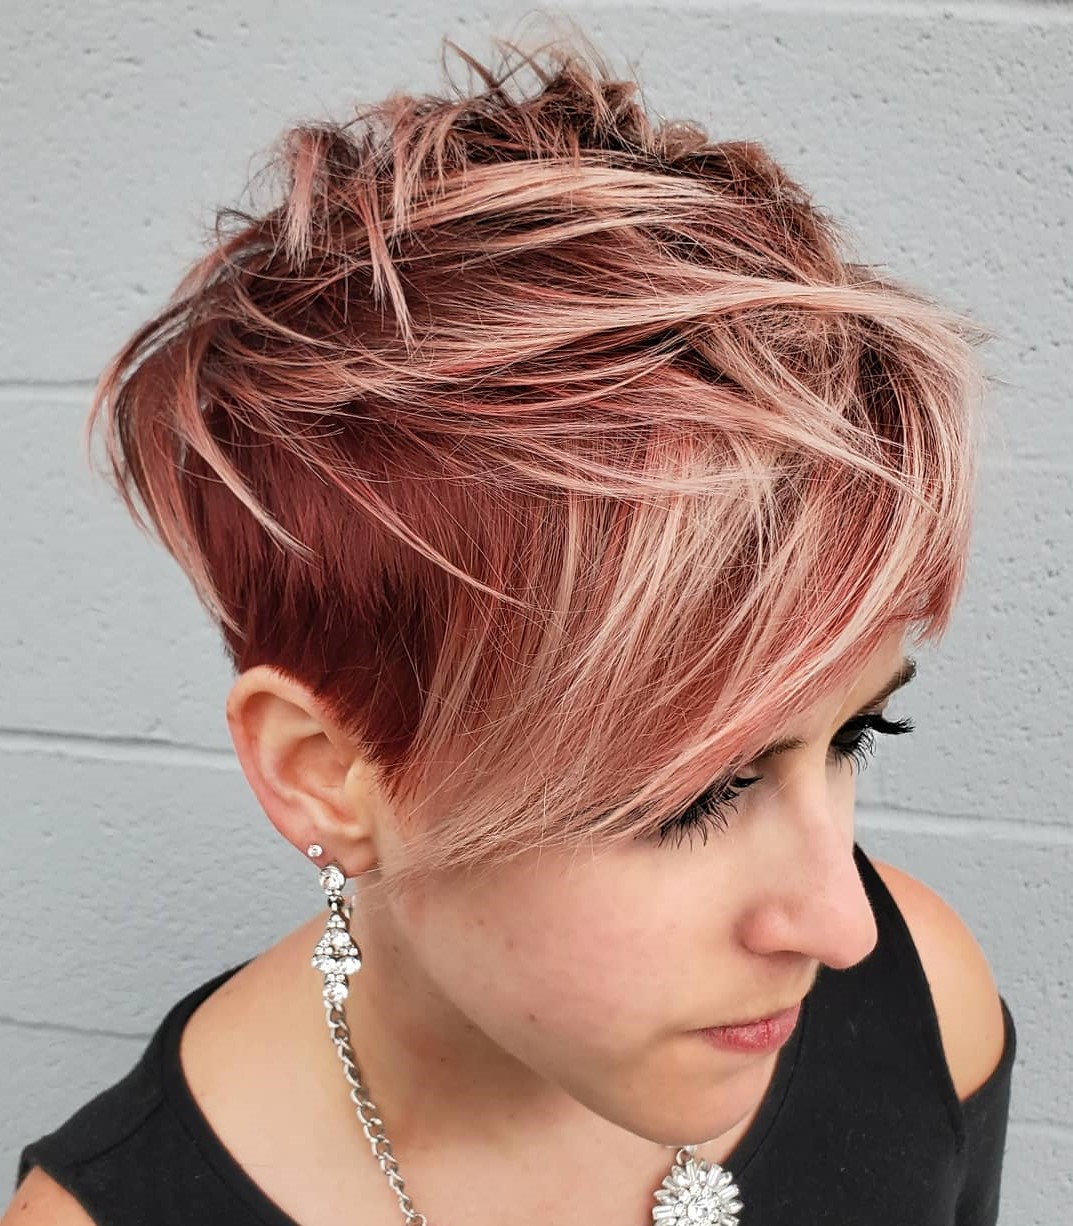 Messy Pink Pixie Cut